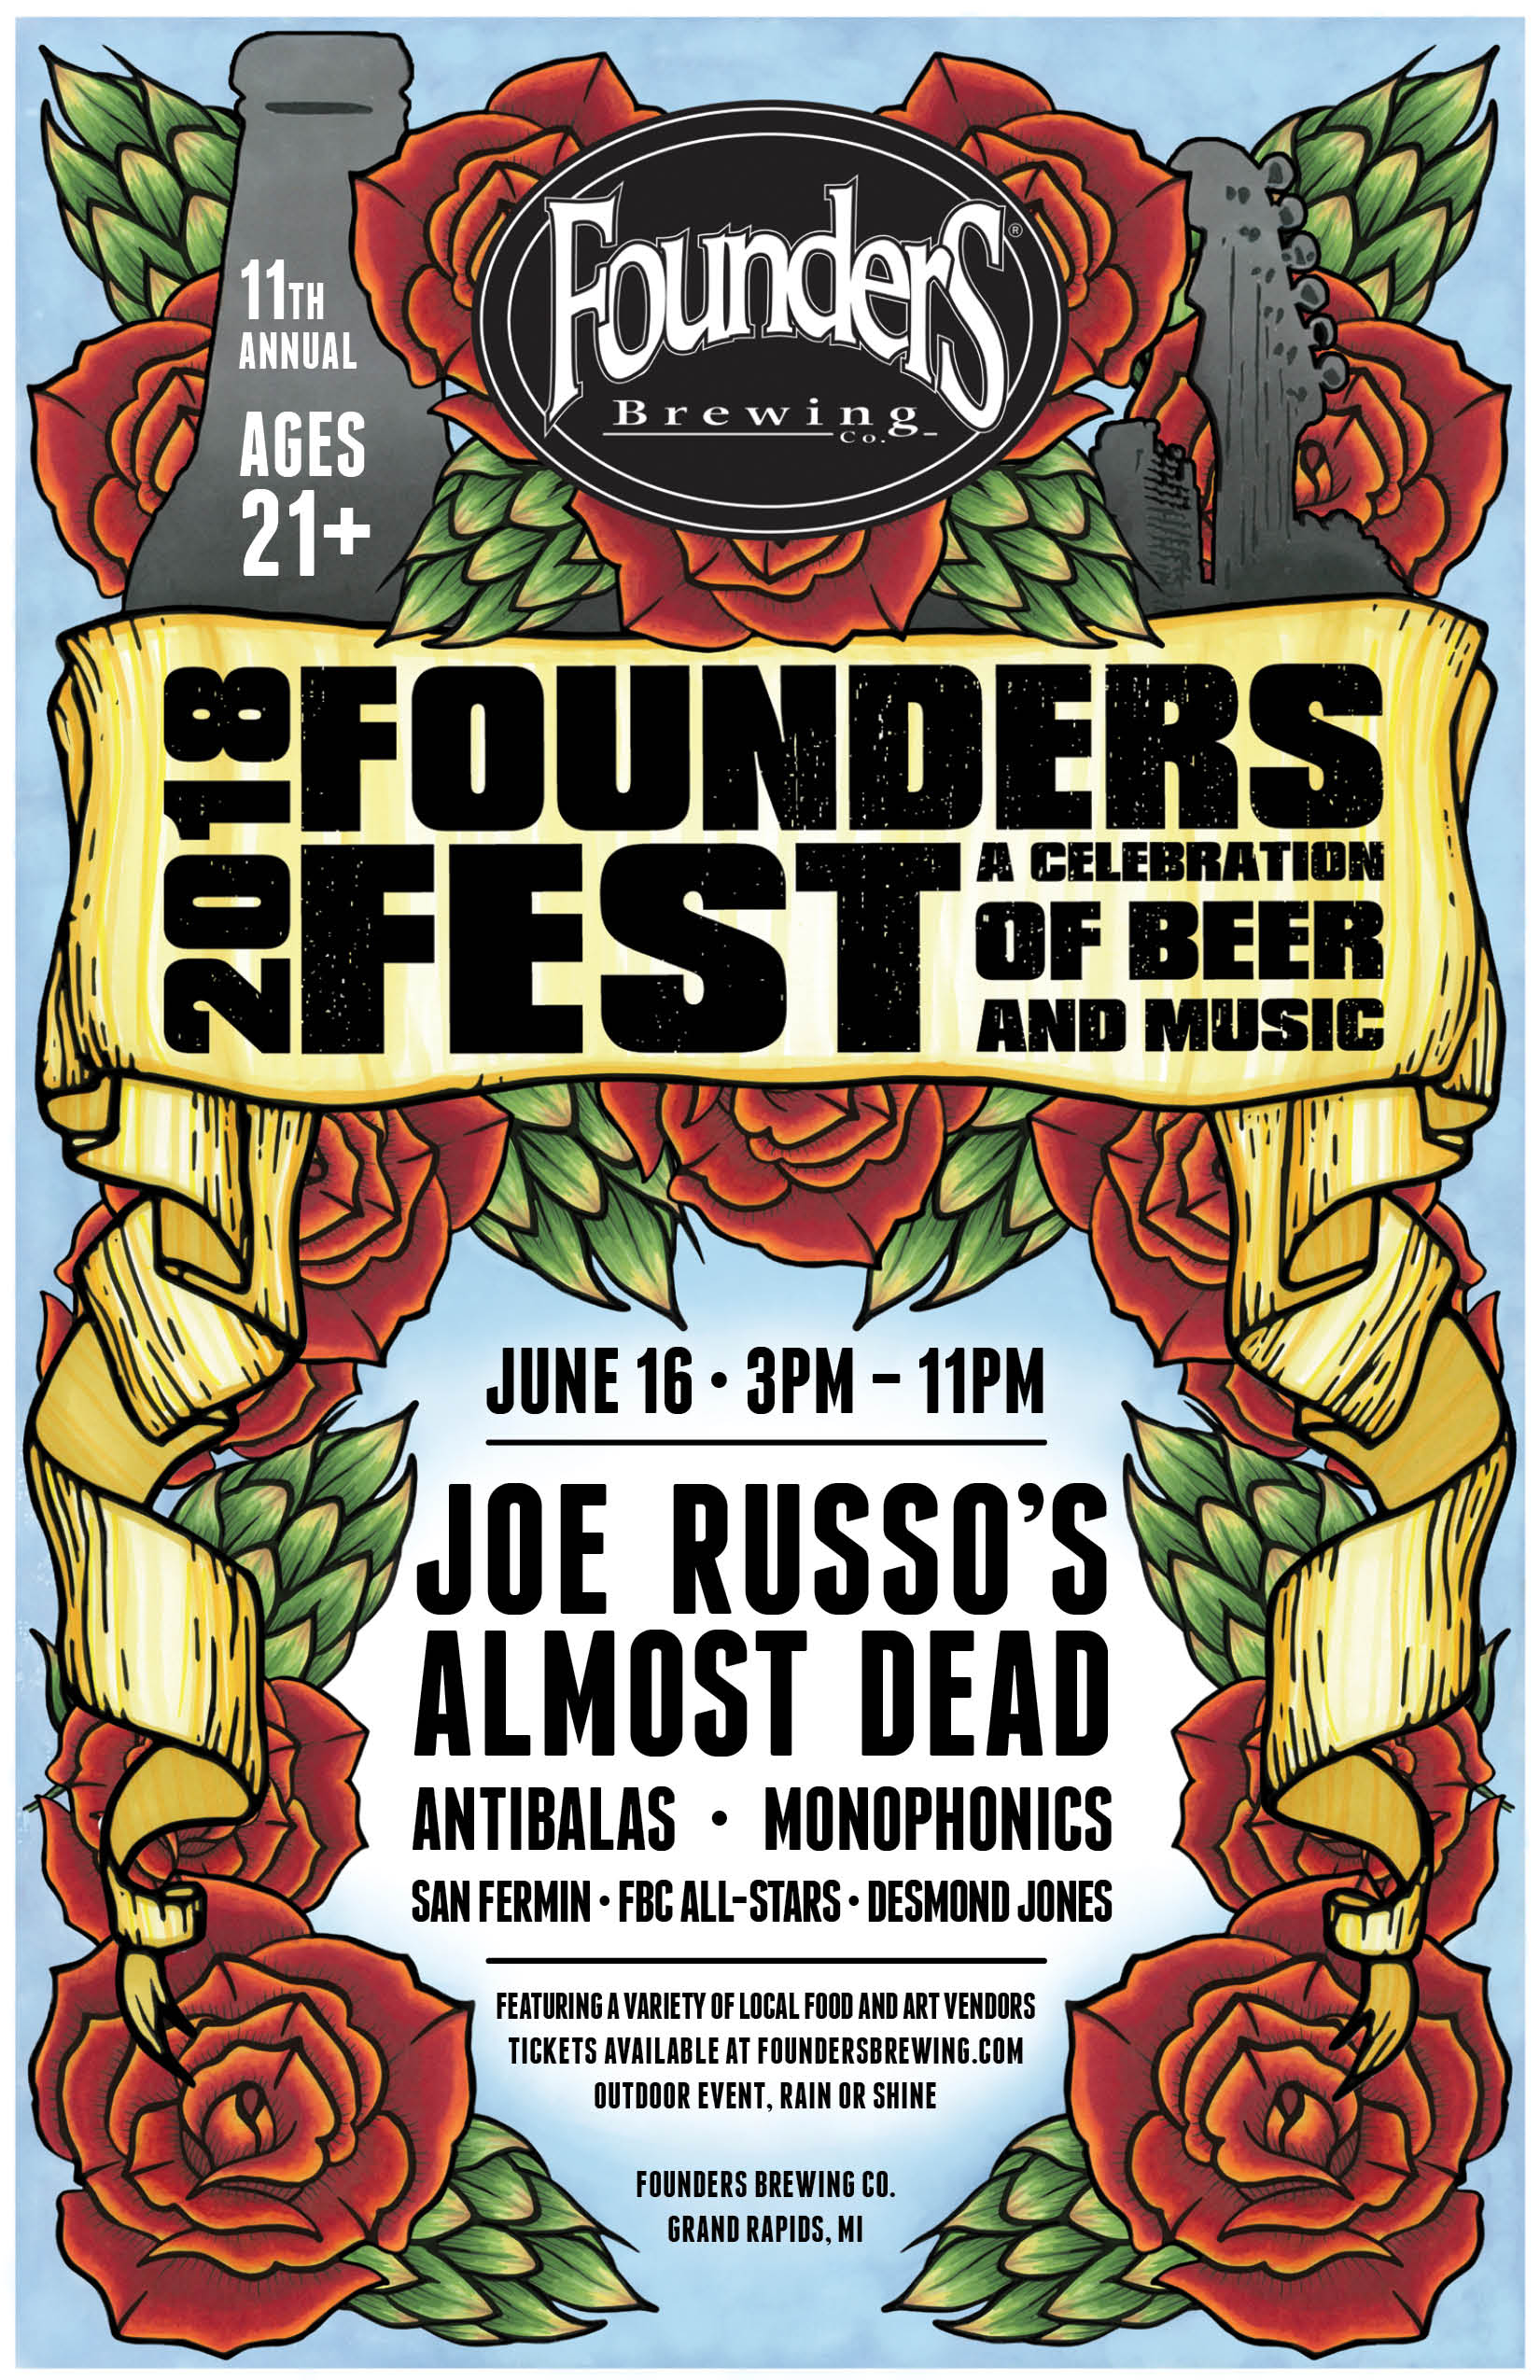 2018 Founders Fest A Celebration of Beer and Music event poster